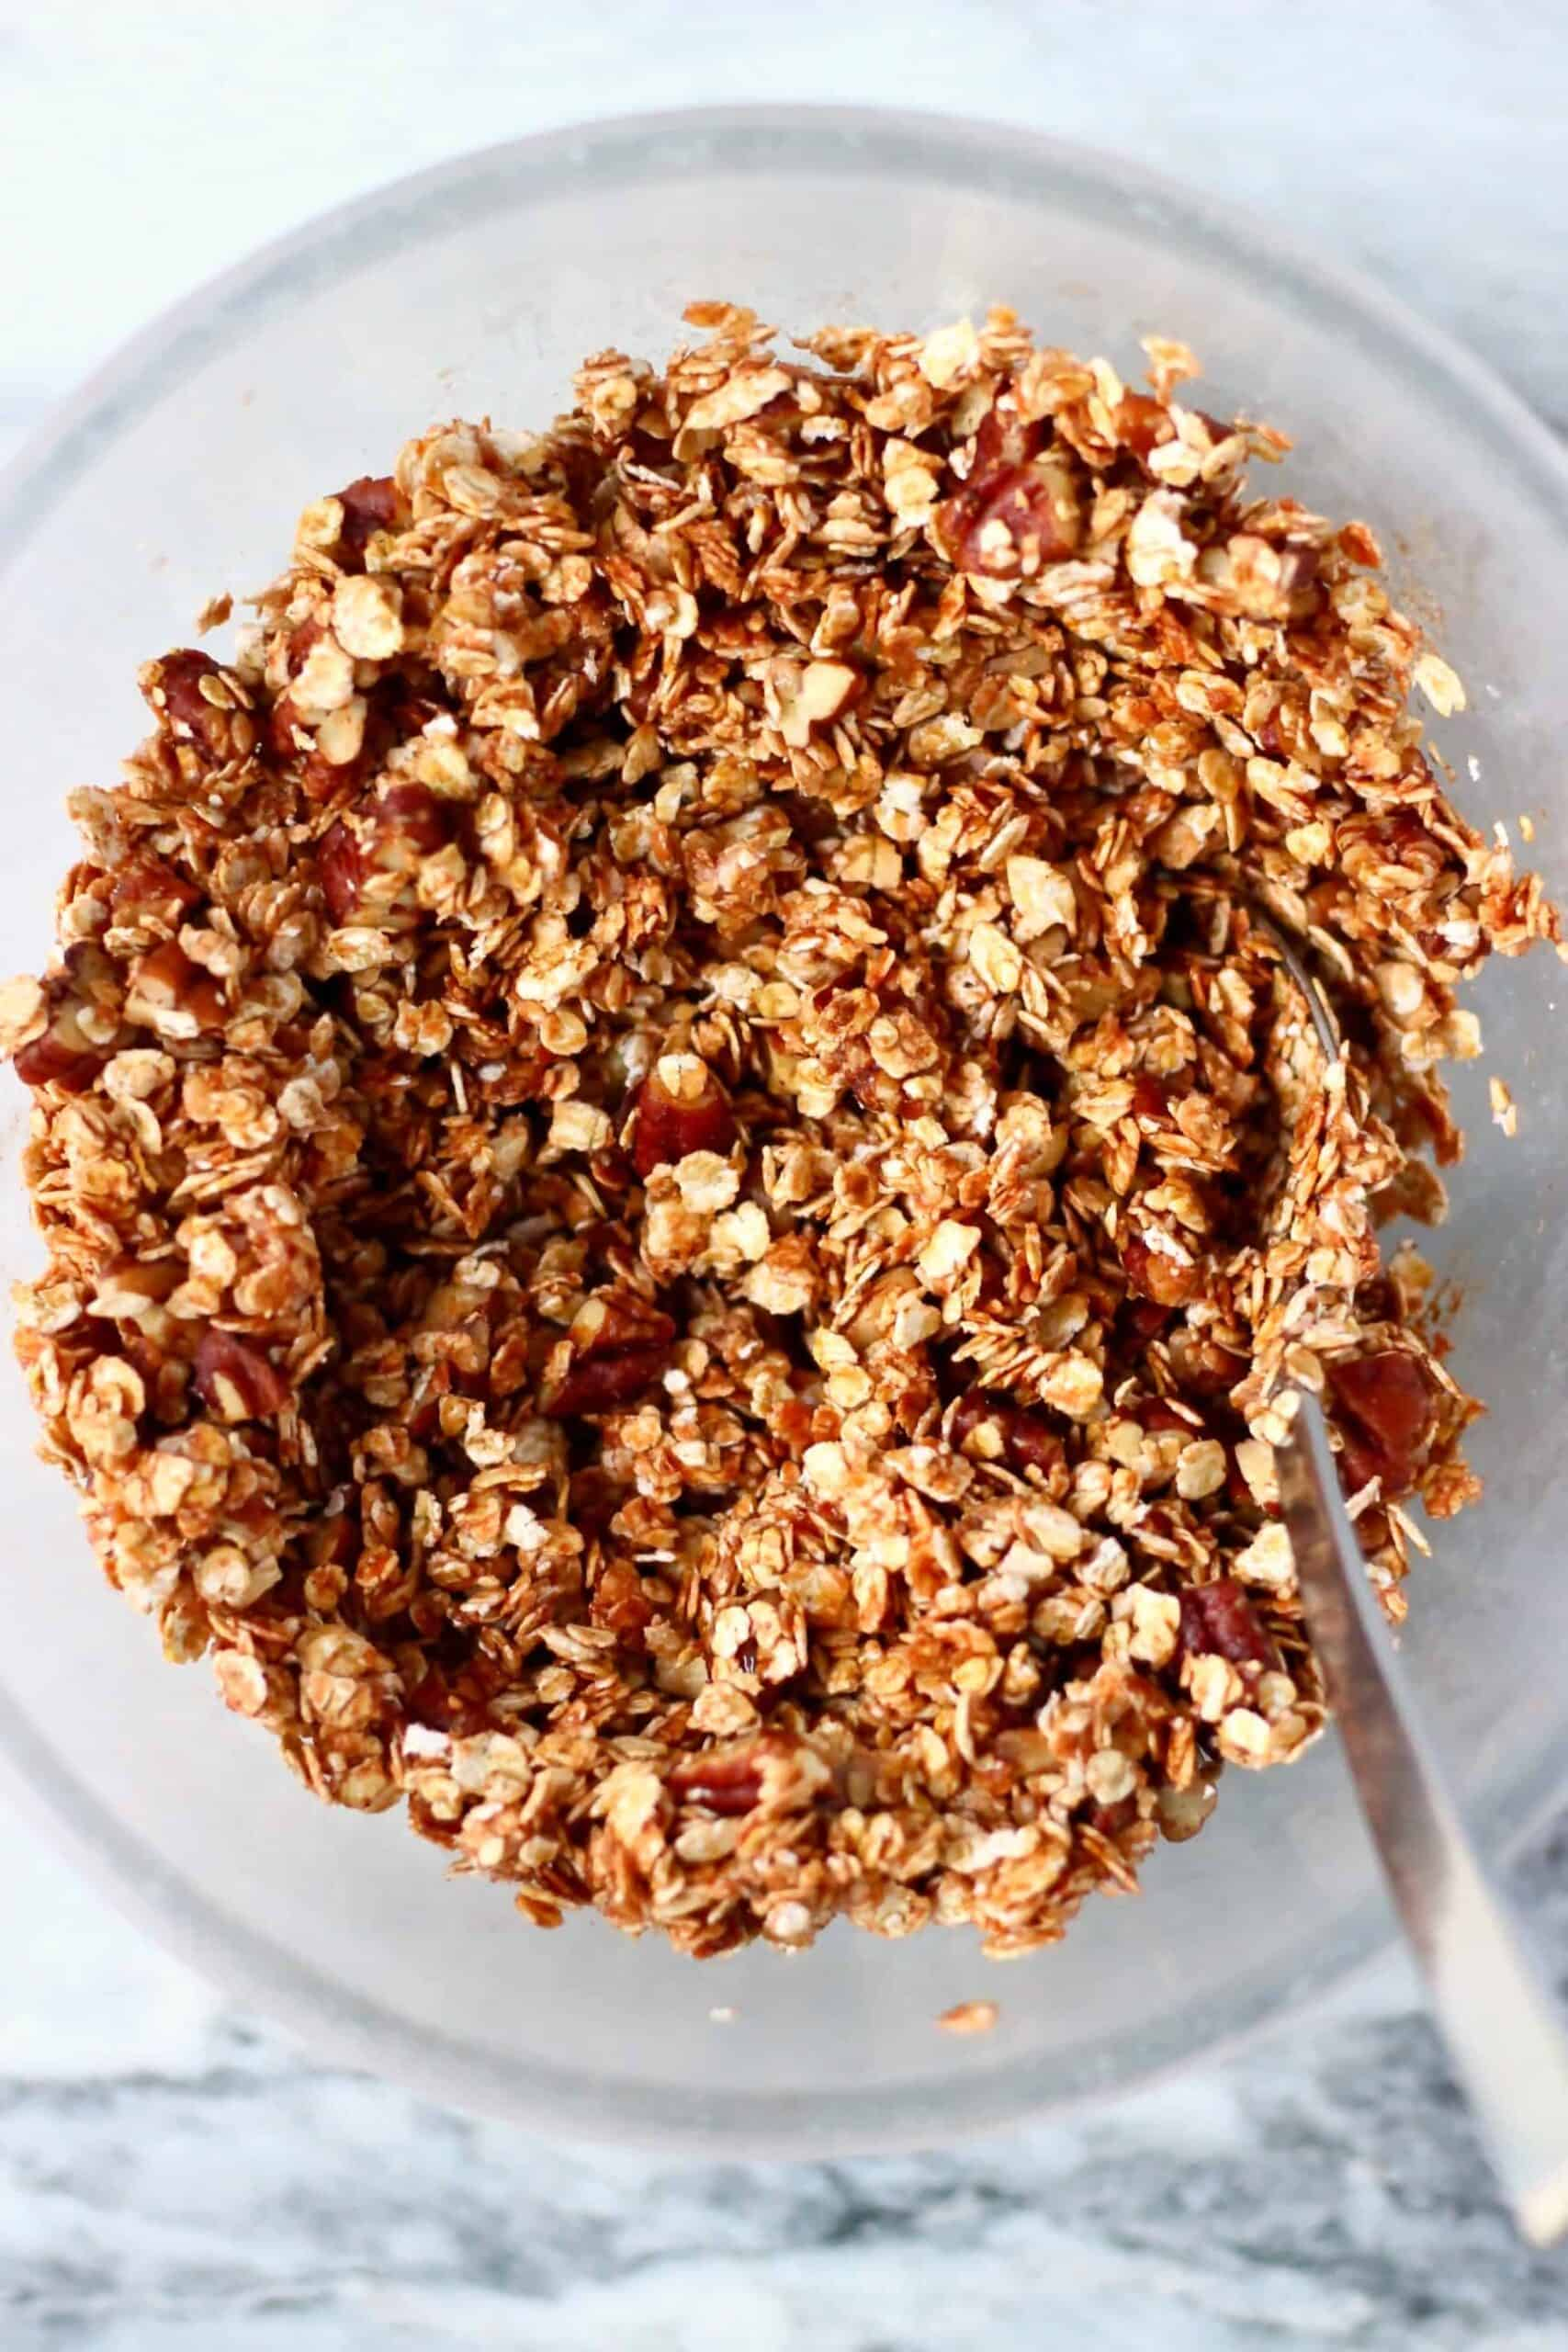 Oats, pecan nuts and syrup mixed together in a bowl